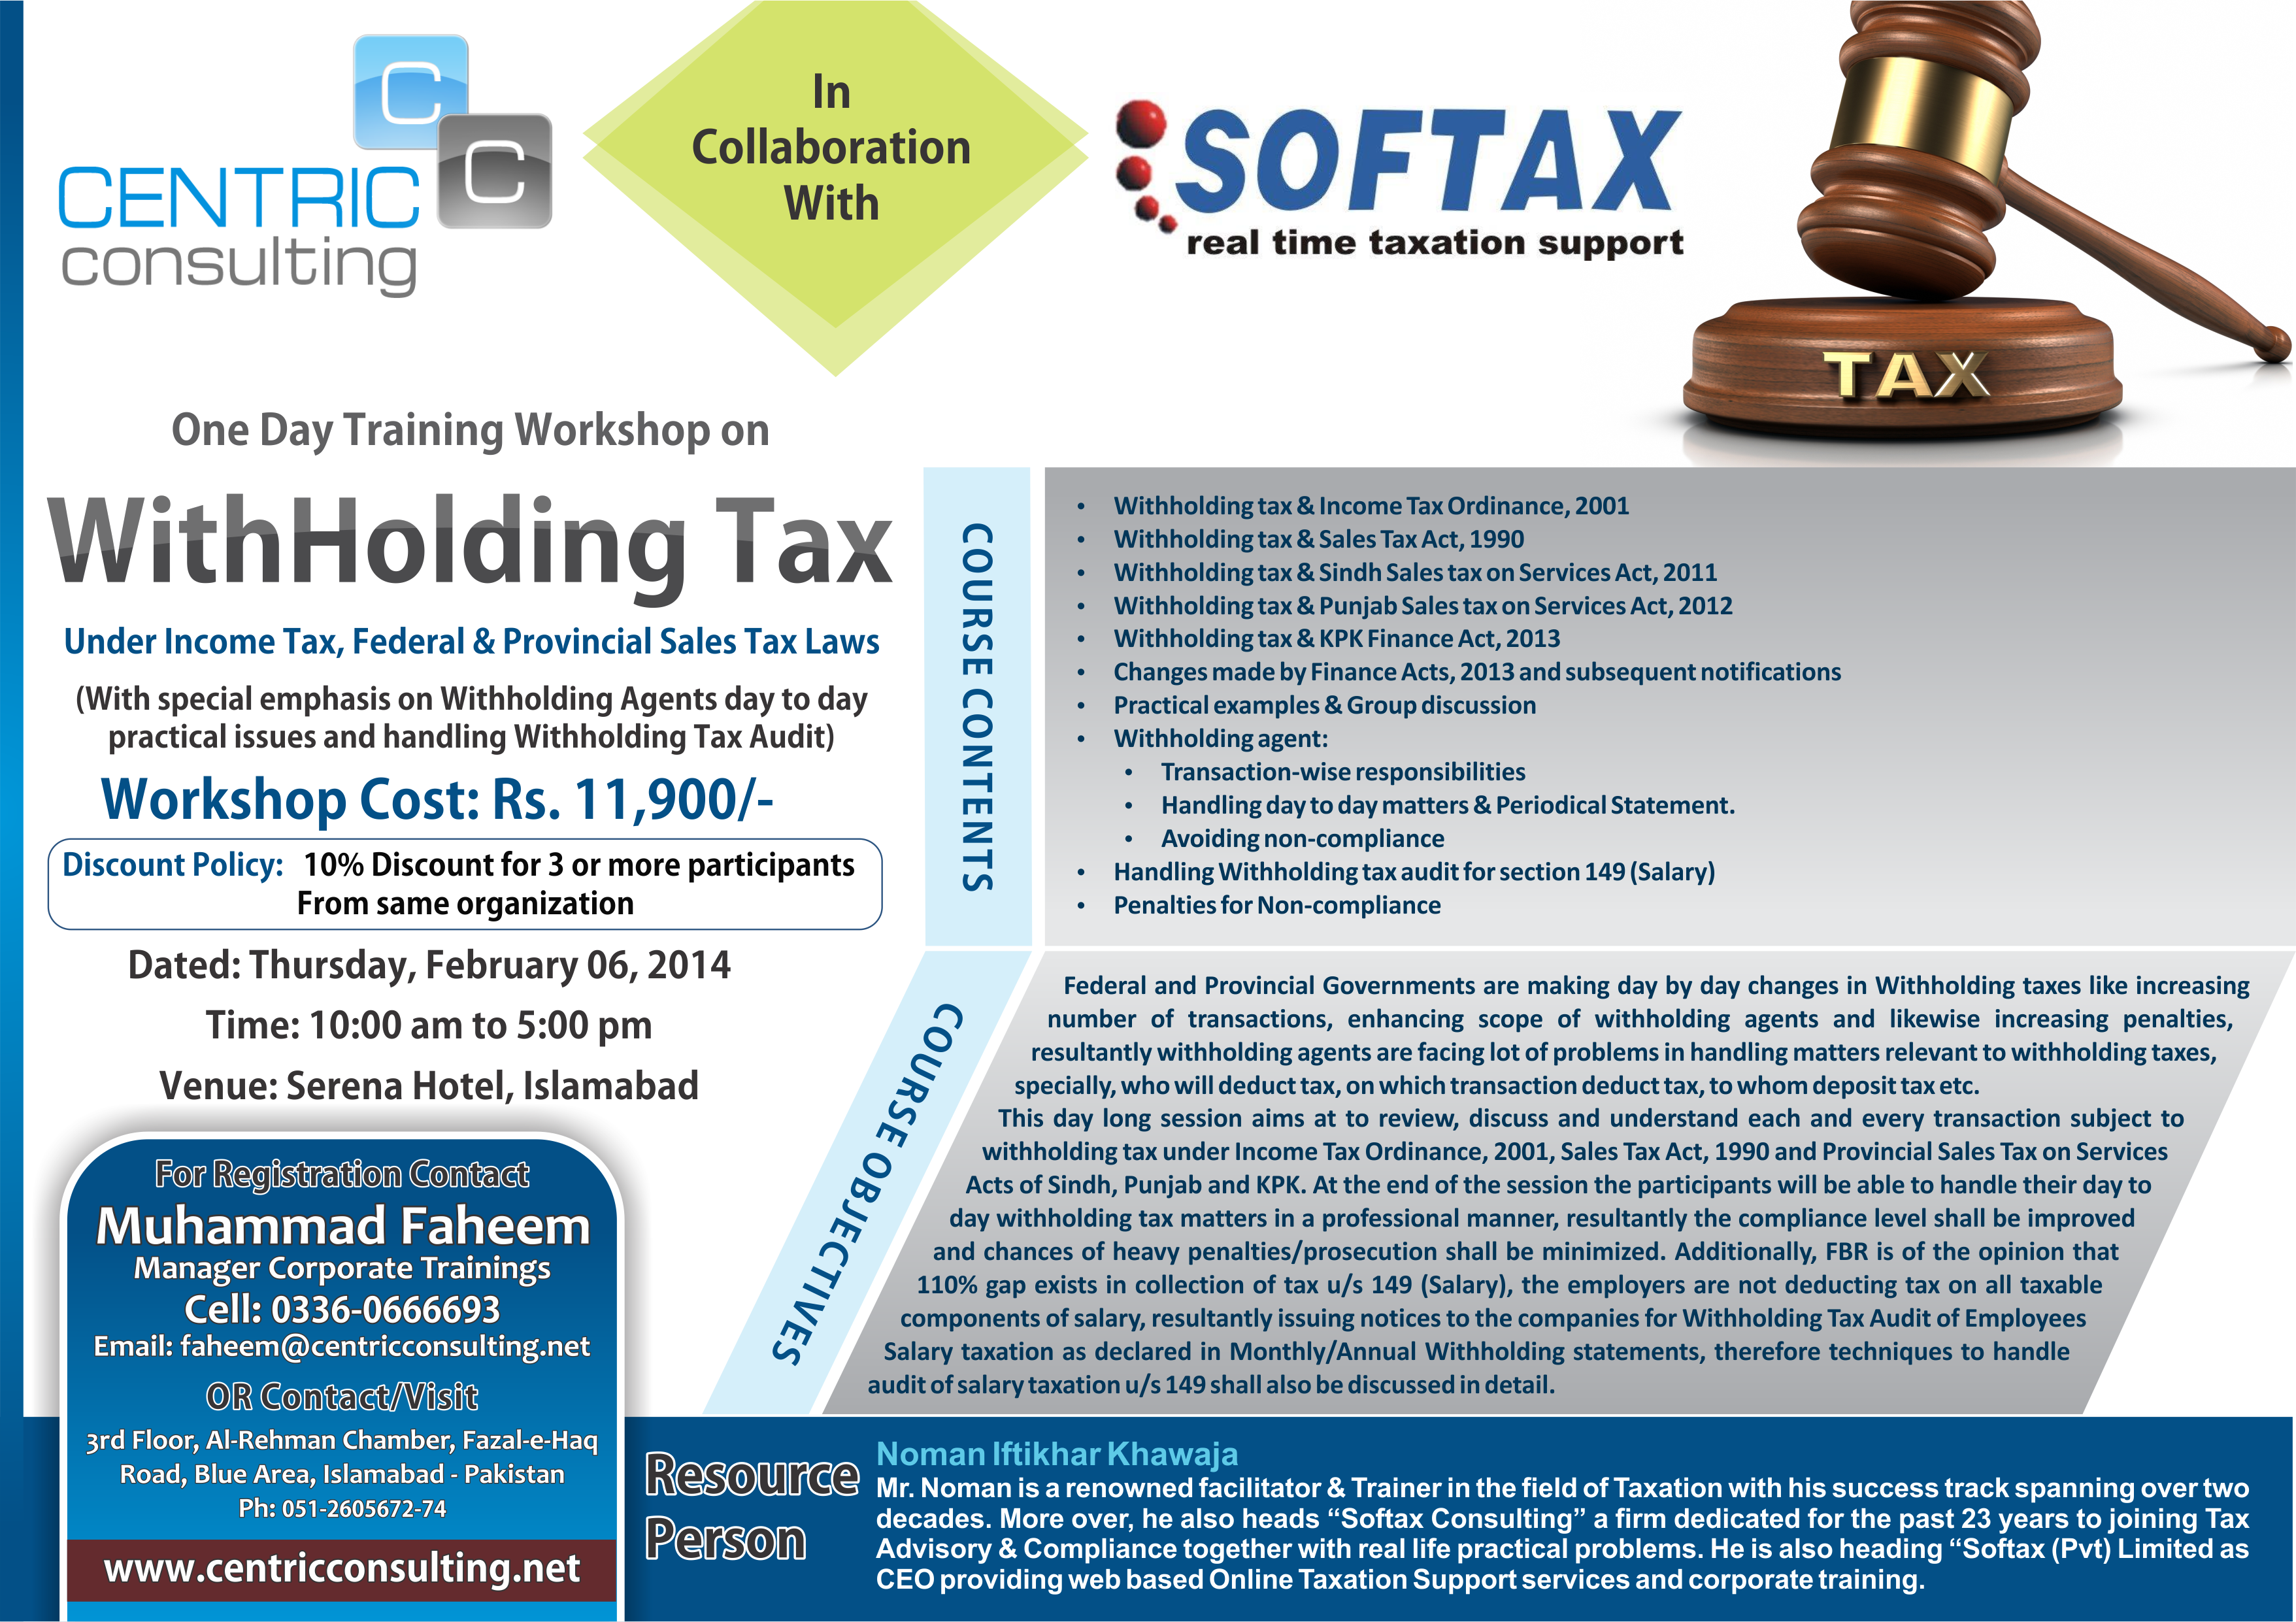 Softax - Real Time Taxation Support - Income Tax, Sales Tax